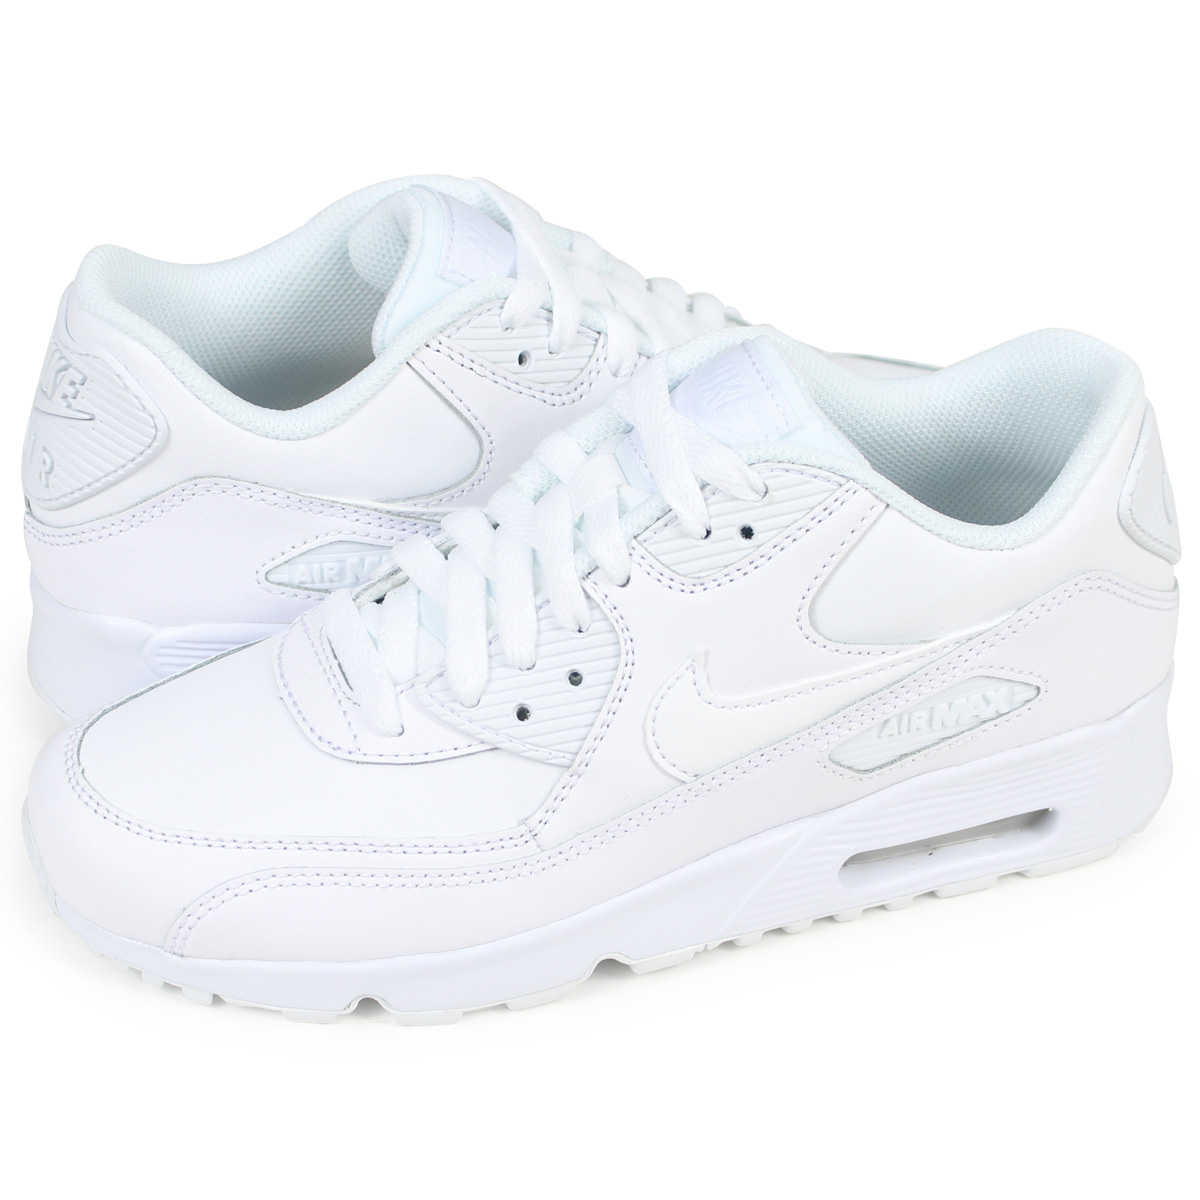 13cb4b4f650 Nike Air Max Womens NIKE sneakers AIR MAX 90 LEATHER GS Air Max 833412-100  shoes white  11   26 new in stock